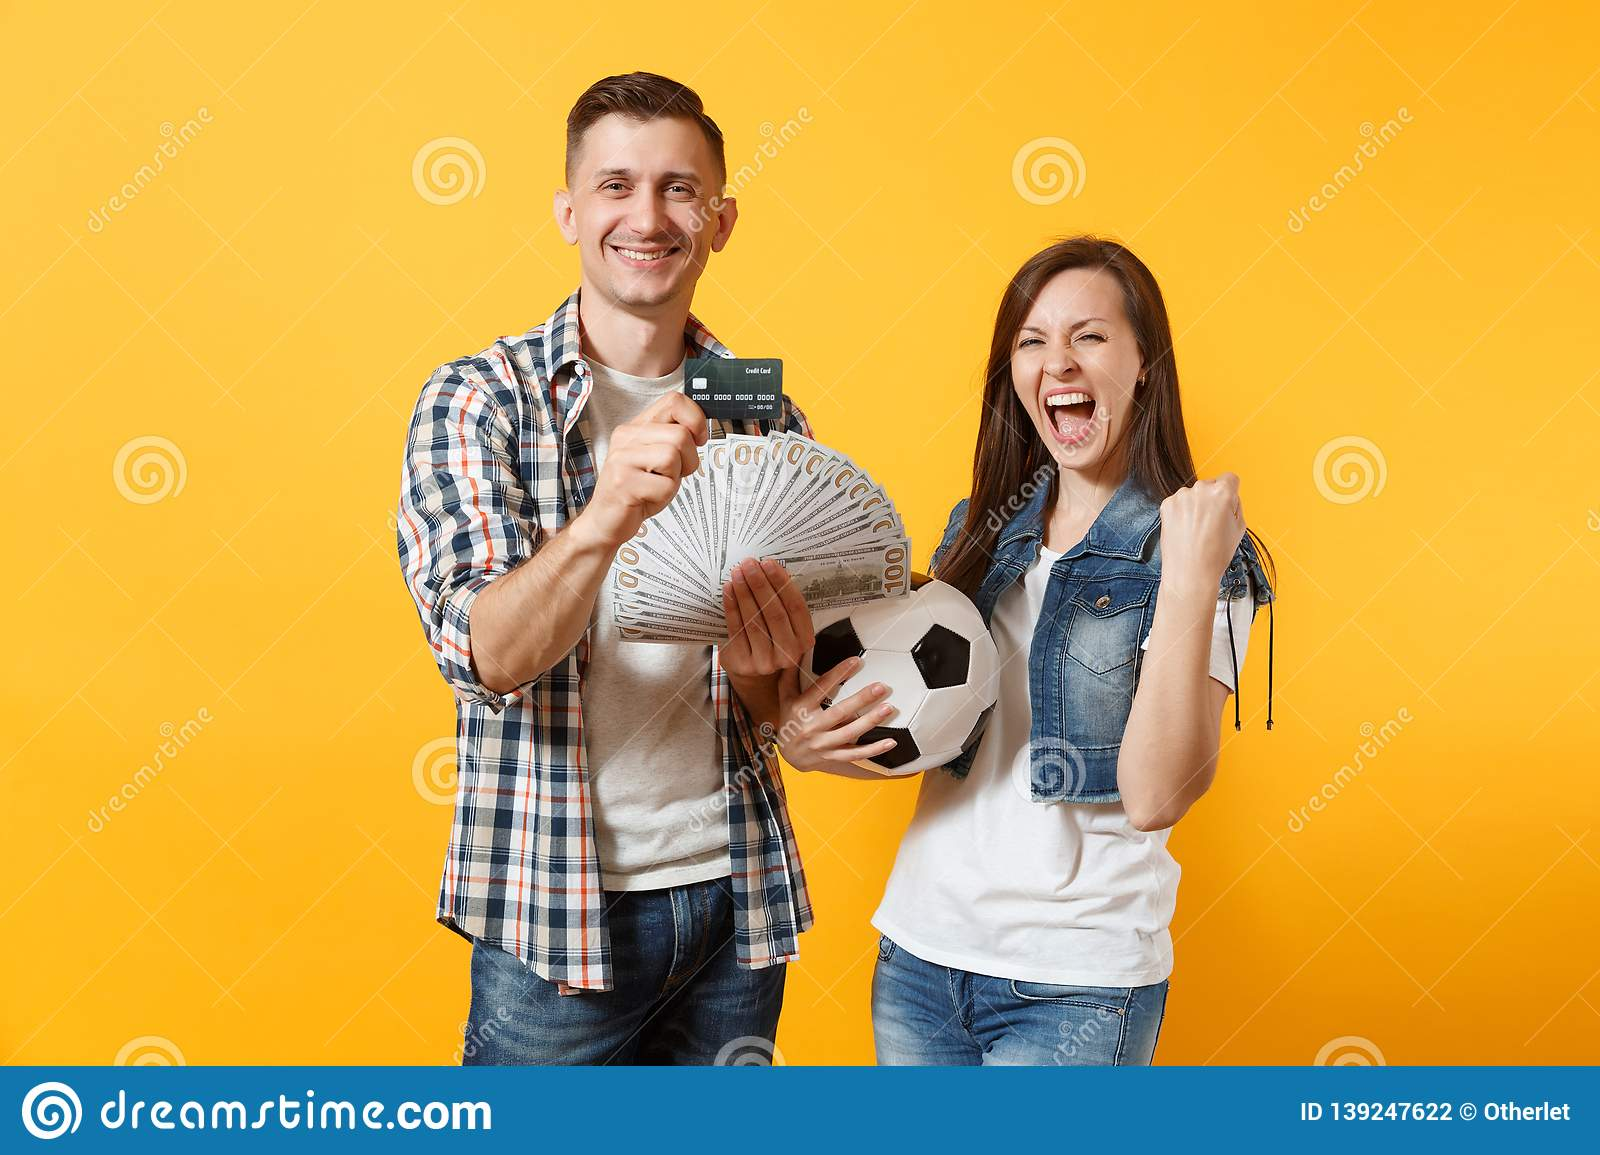 Young win couple, woman man, football fans holding bundle of dollars money, credit card, soccer ball, cheer up support